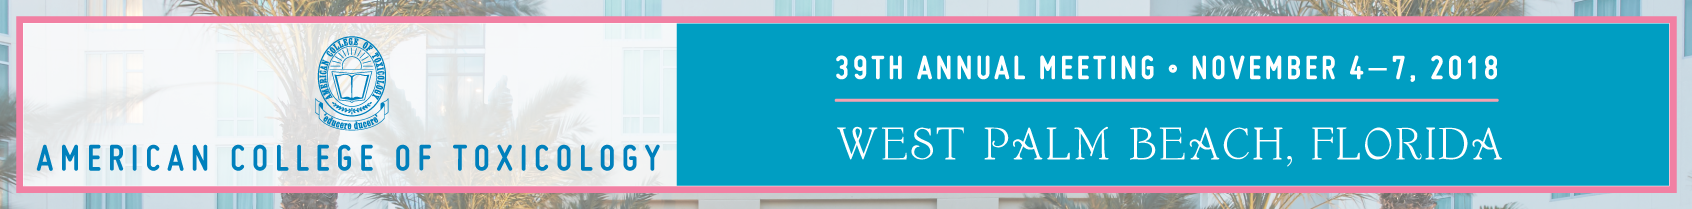 ACT 39th Annual Meeting - November 4-7, 2018 - West Palm Beach,